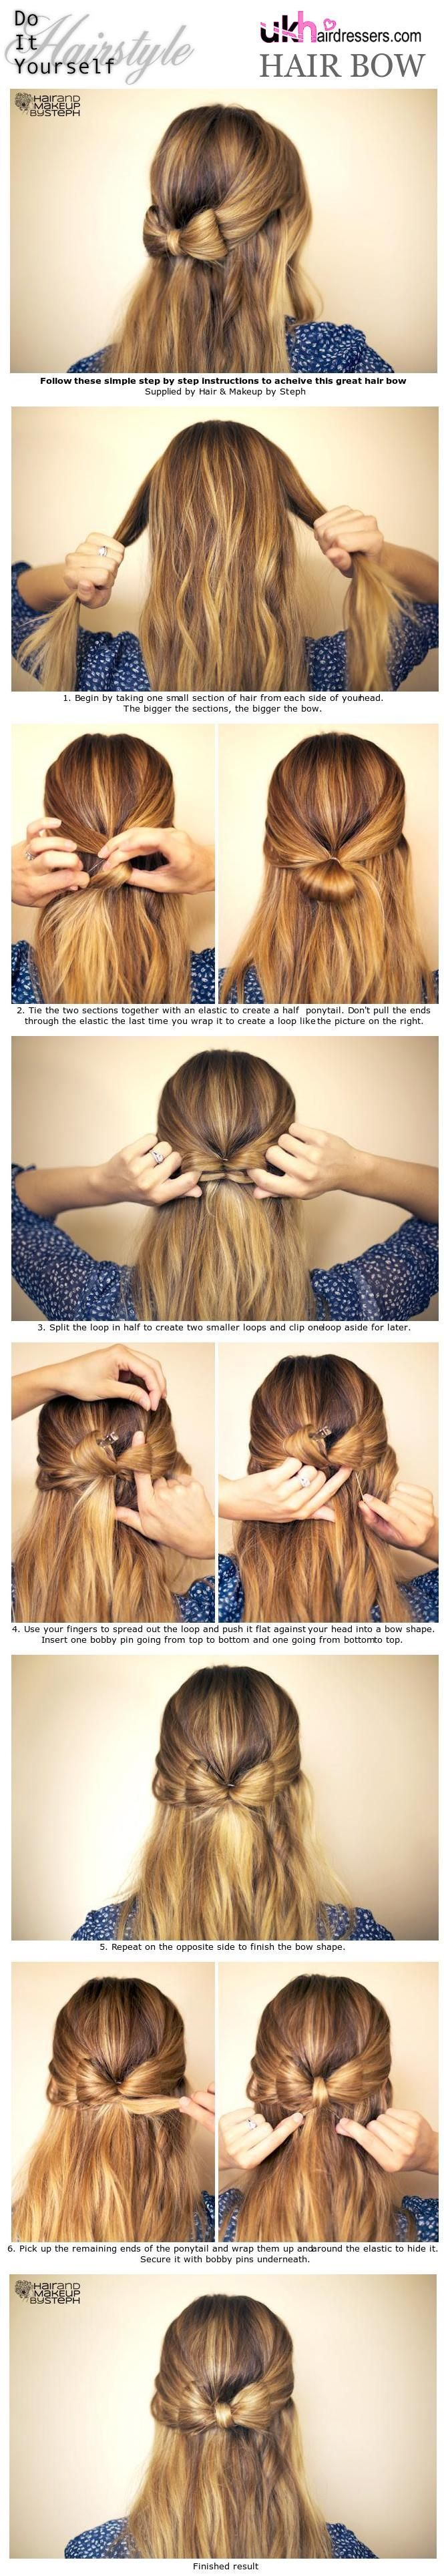 15 Cute 5 Minute Hairstyles for School